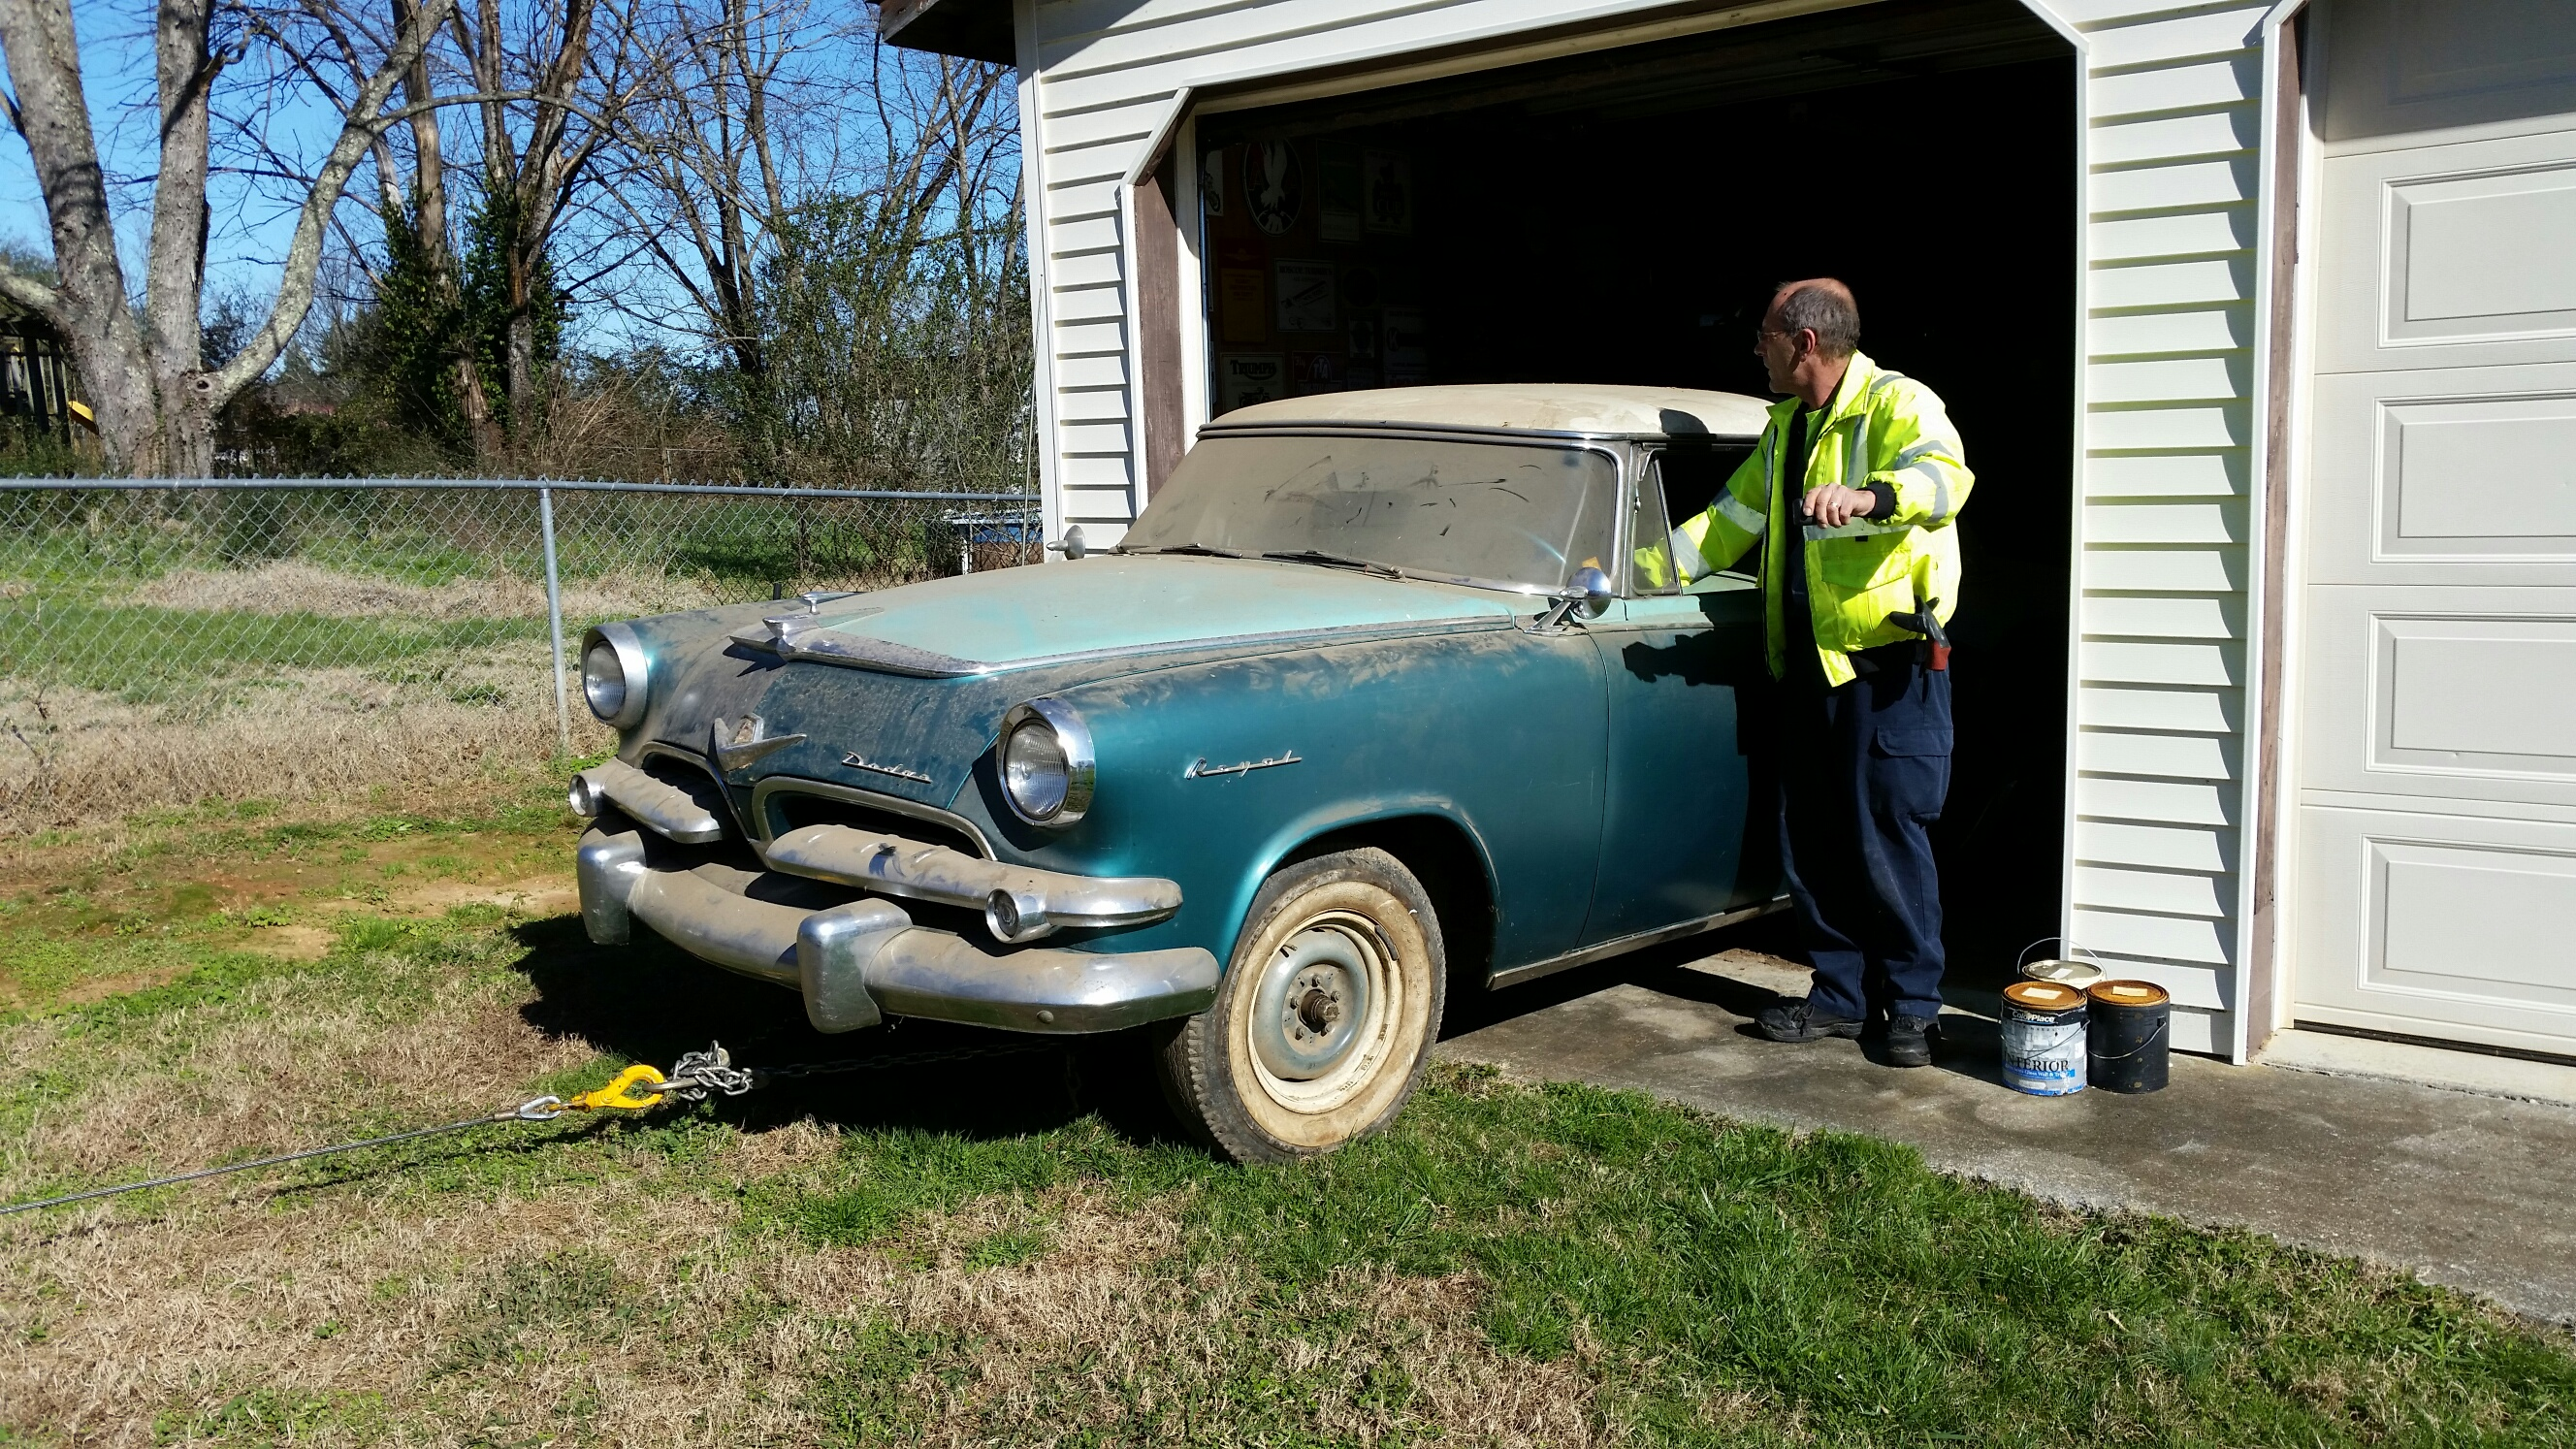 1955 dodge royal barn find for sale - The Old Dodge Emerges Into The Sunlight For The First Time In Many Years